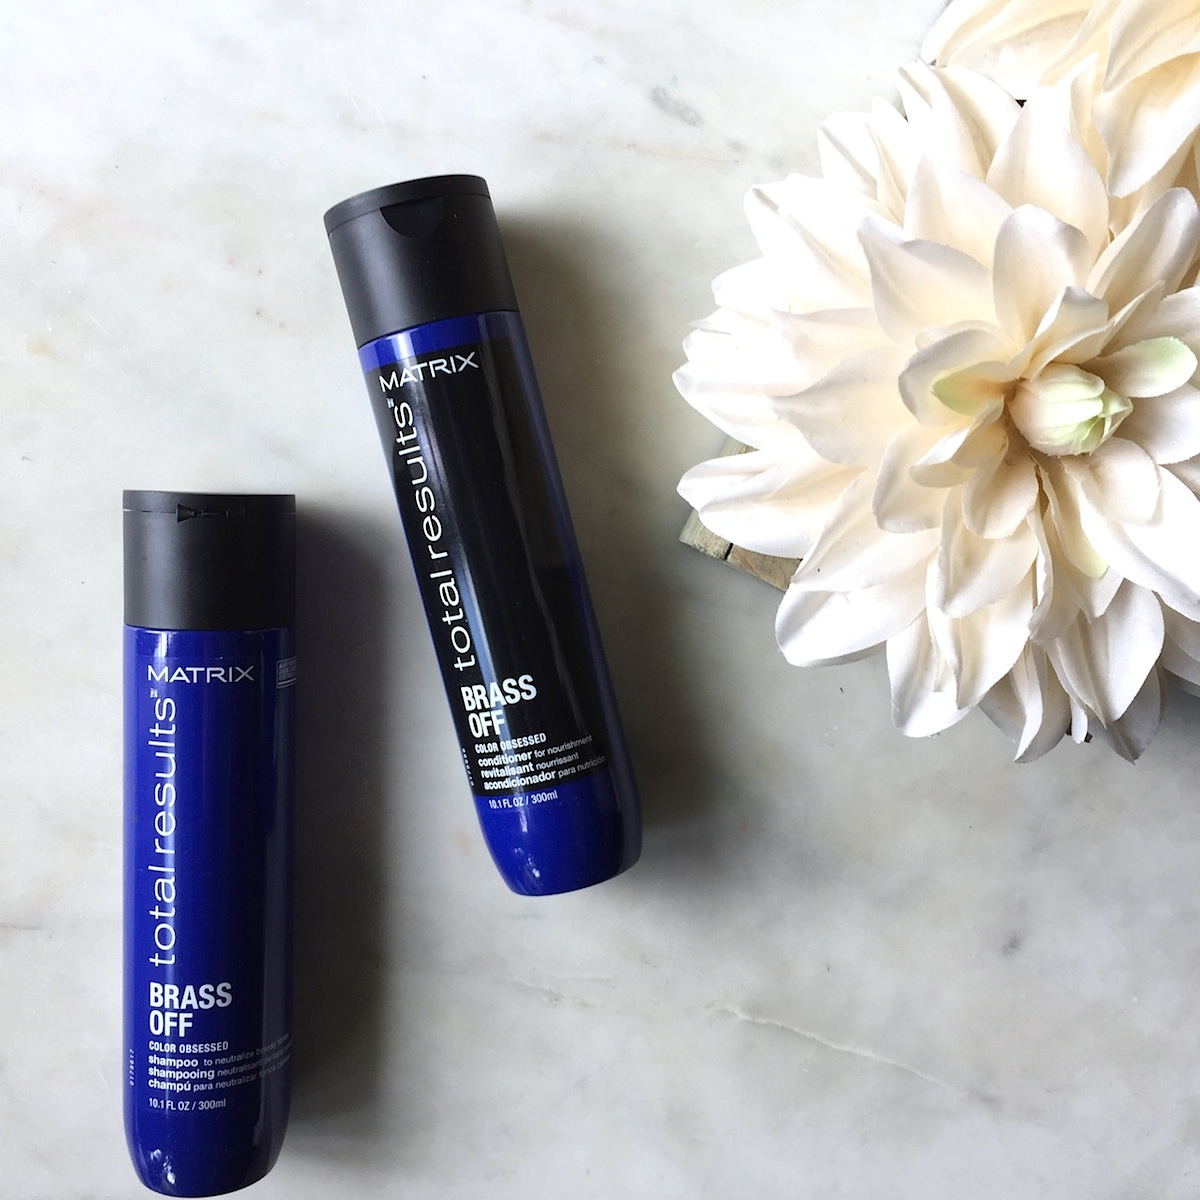 Matrix Total Results Brass Off Shampoo and Conditioner: A quick review